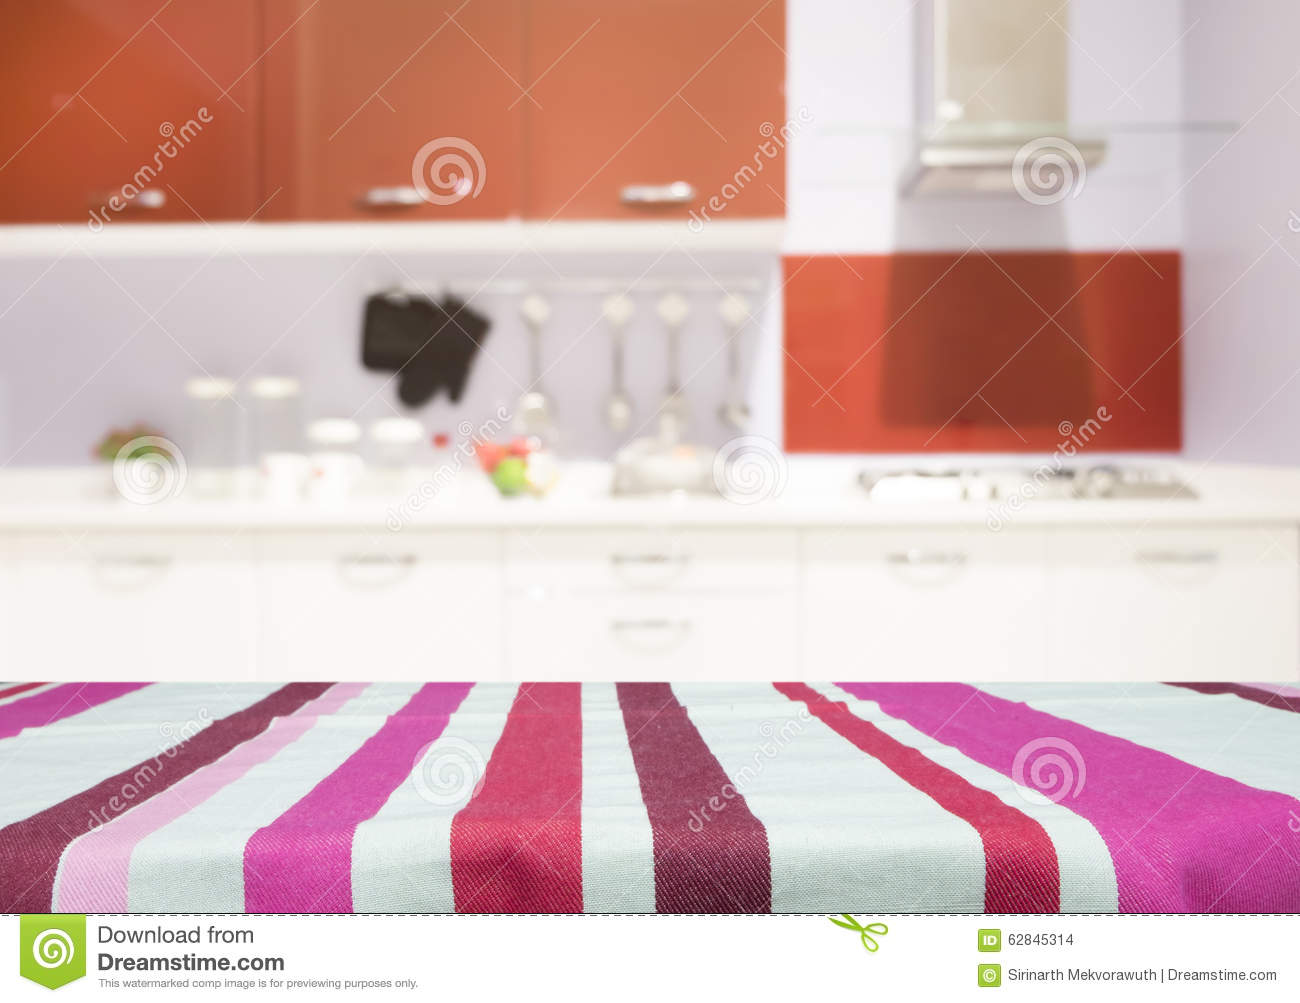 Kitchen Present Table With Linen Tablecloth For Present Product On Kitchen Blur